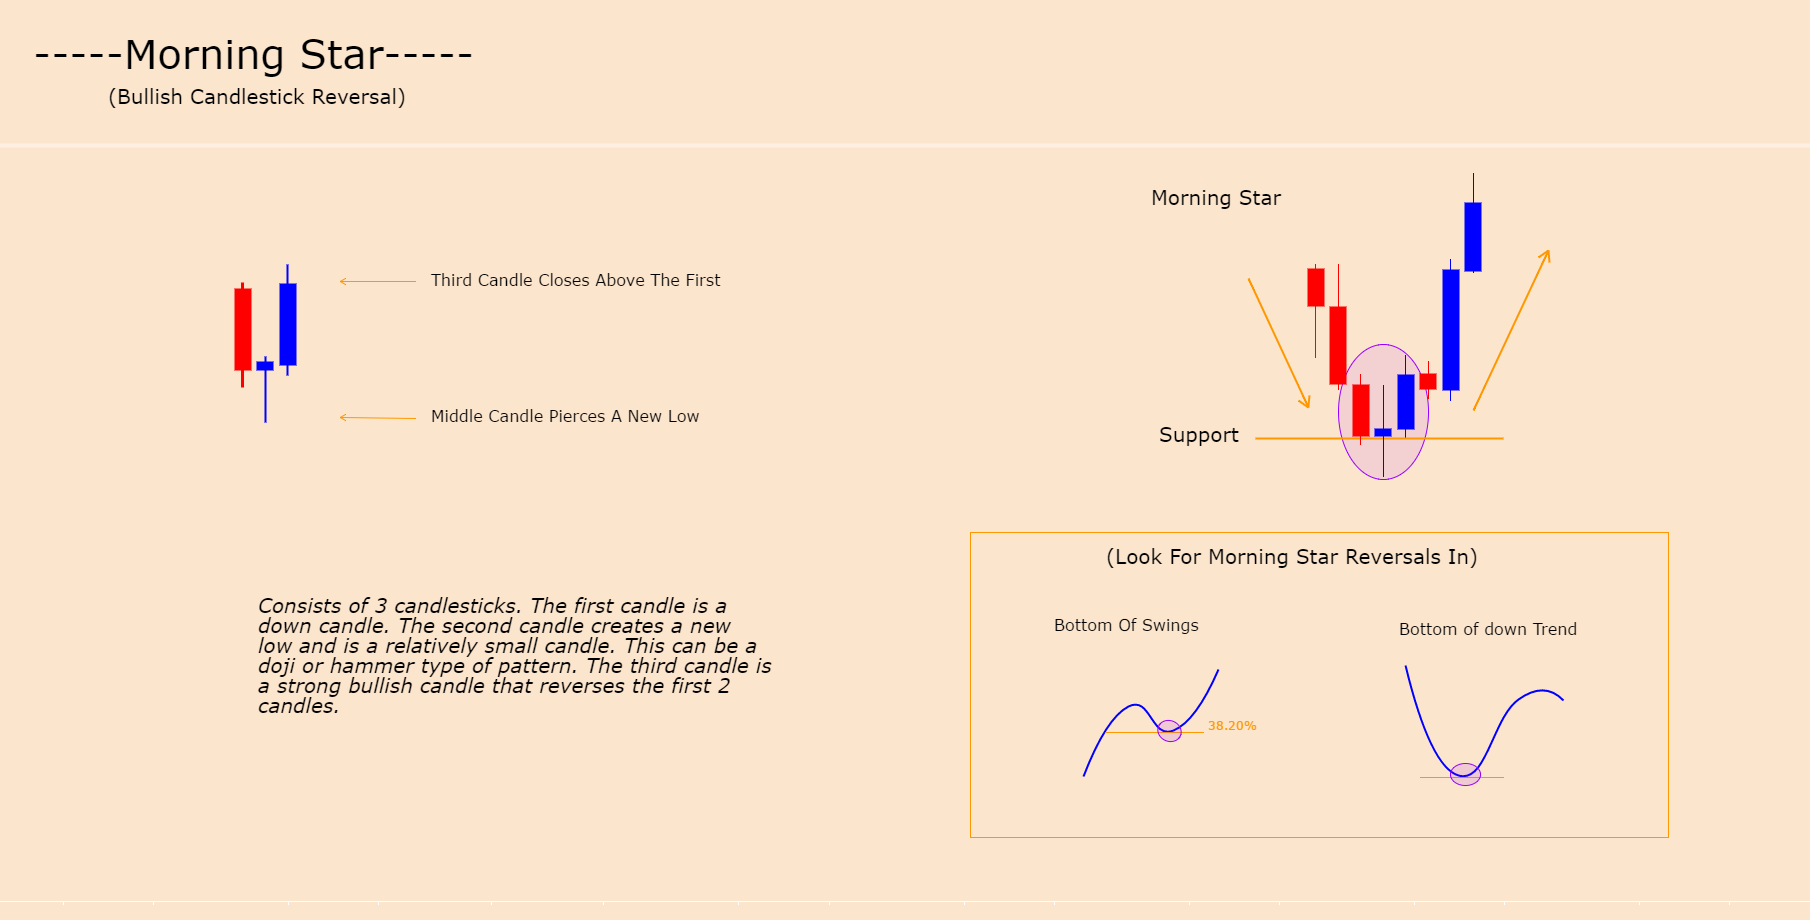 MORNING STAR - CANDLE FORMATION (BULLISH REVERSAL)